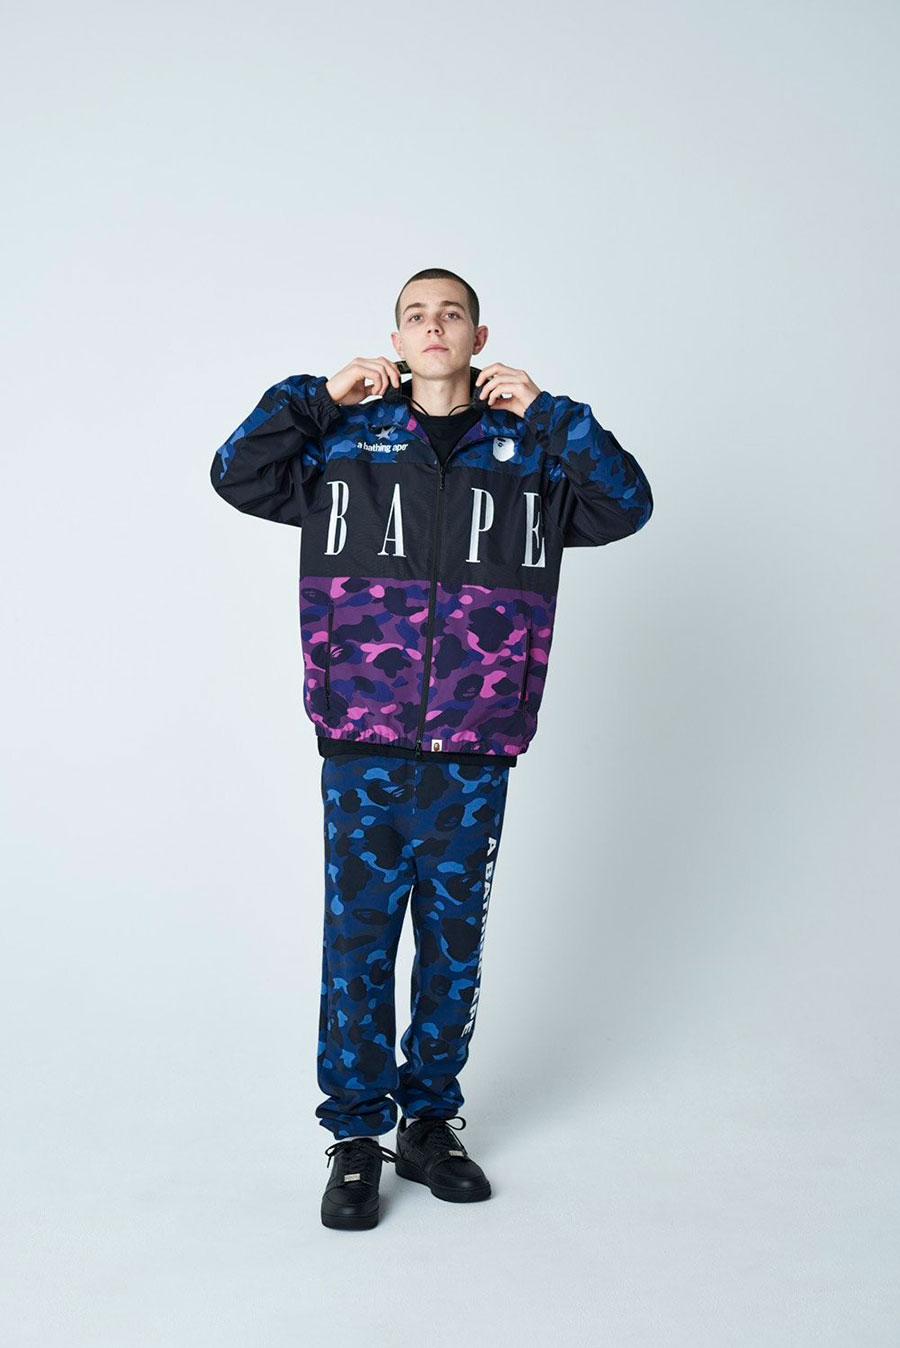 潮牌 A BATHING APE® 发布 2020 最新秋冬男装搭配造型 Lookbook插图(9)